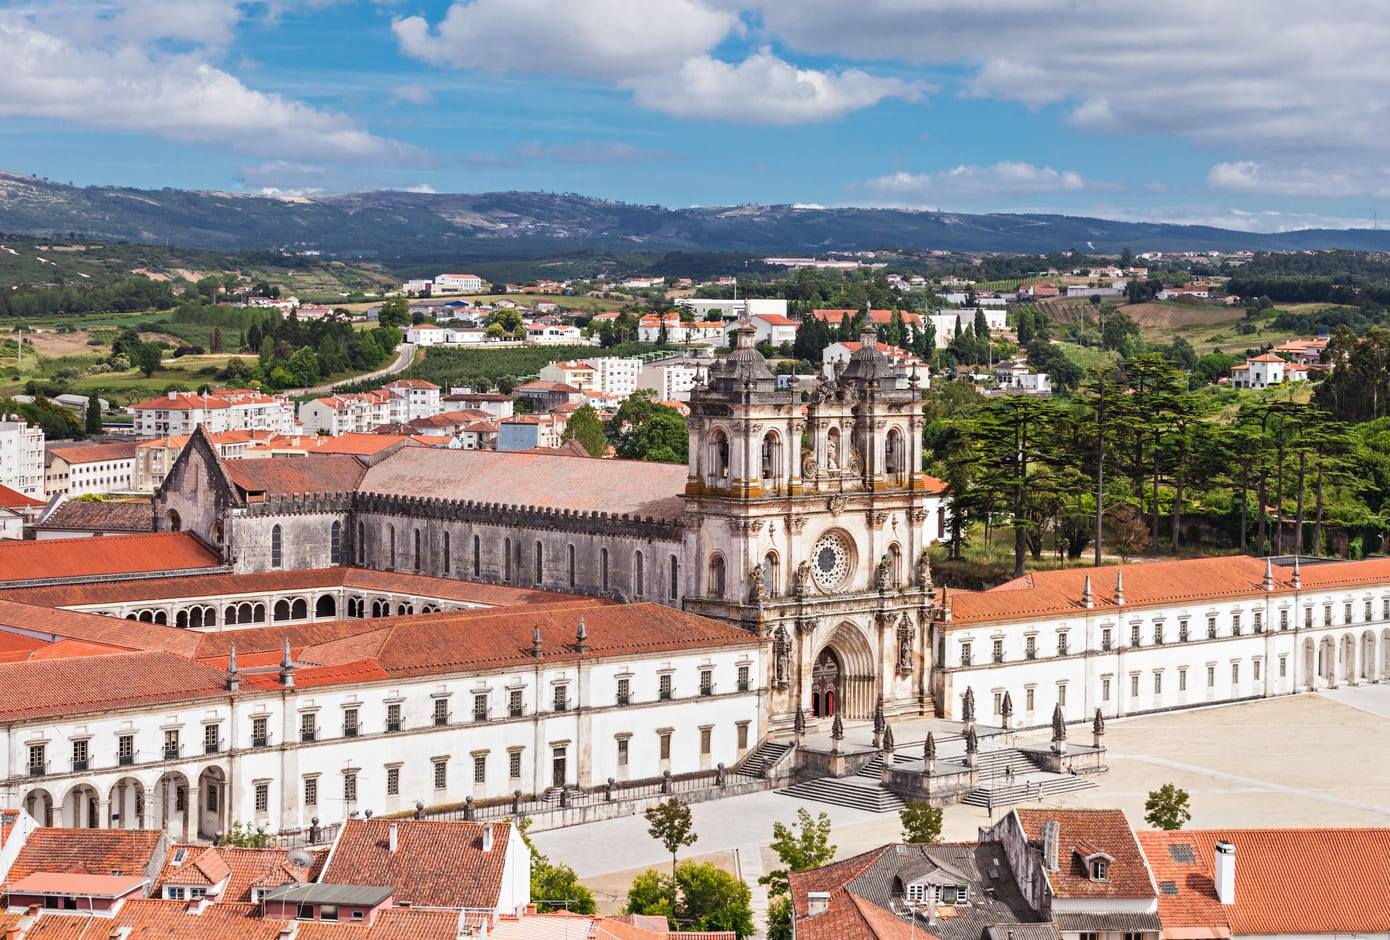 Aerial view of Alcobaça Monastery, in Portugal